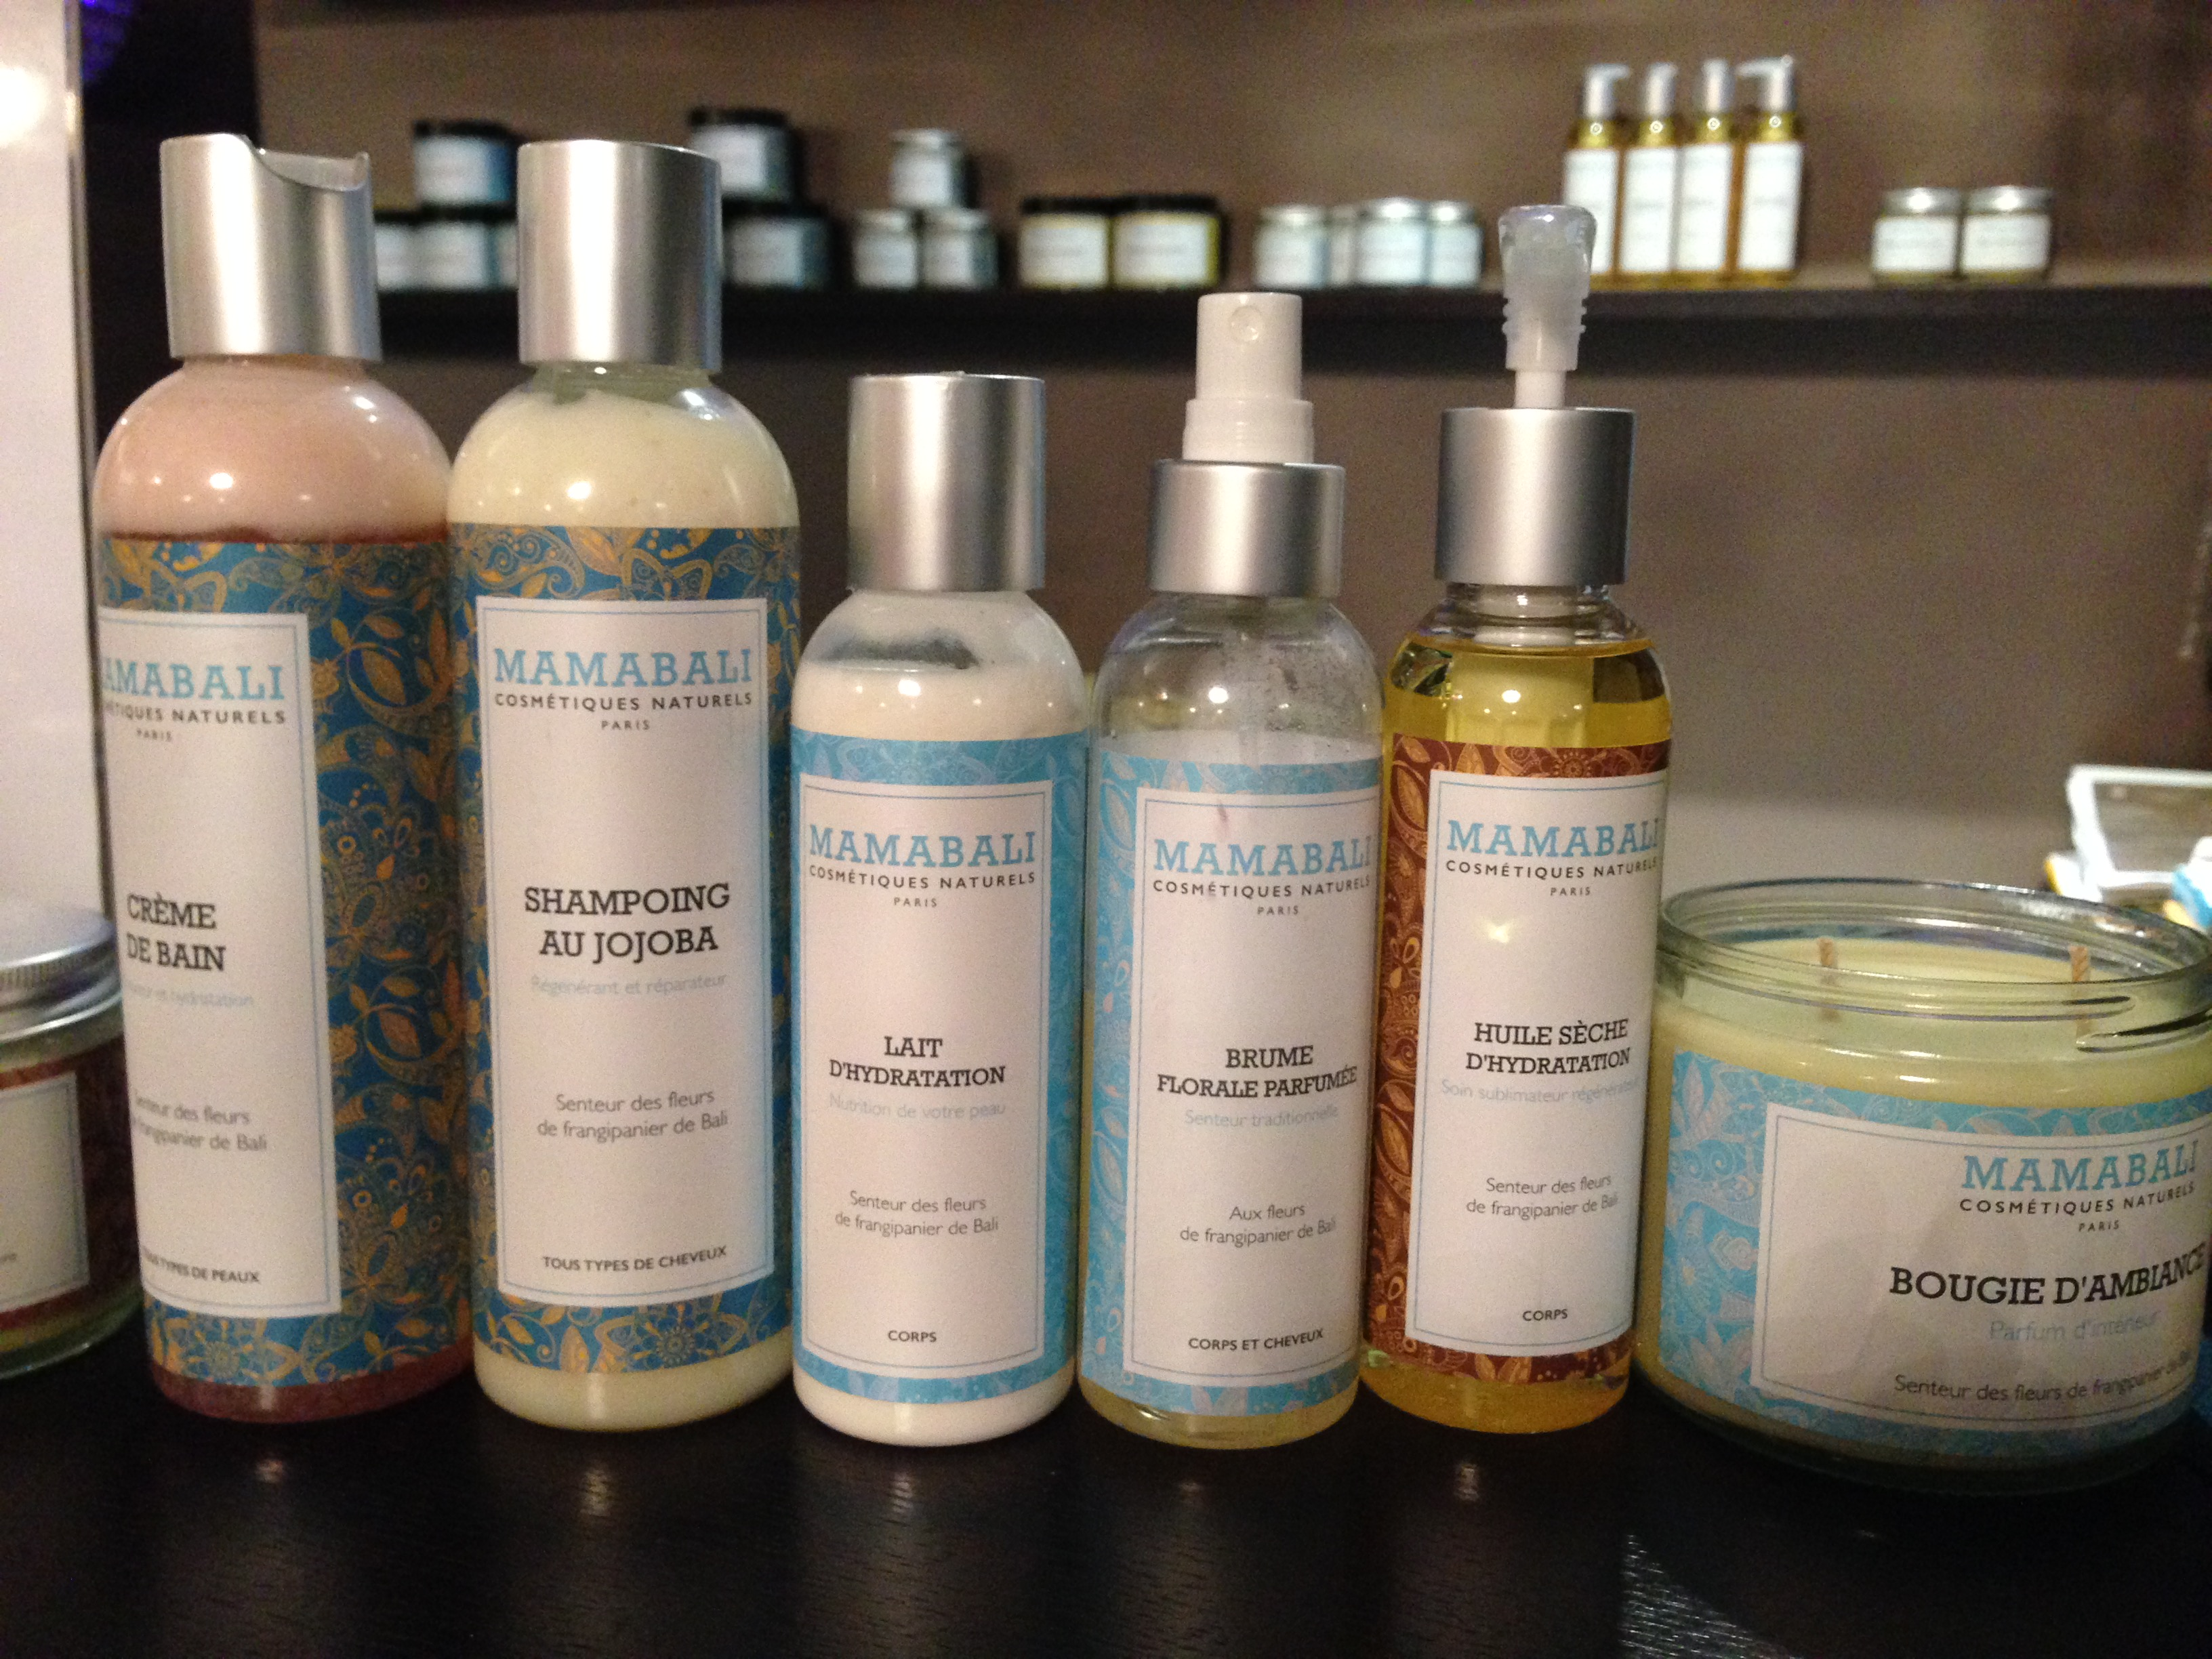 mama bali spa products